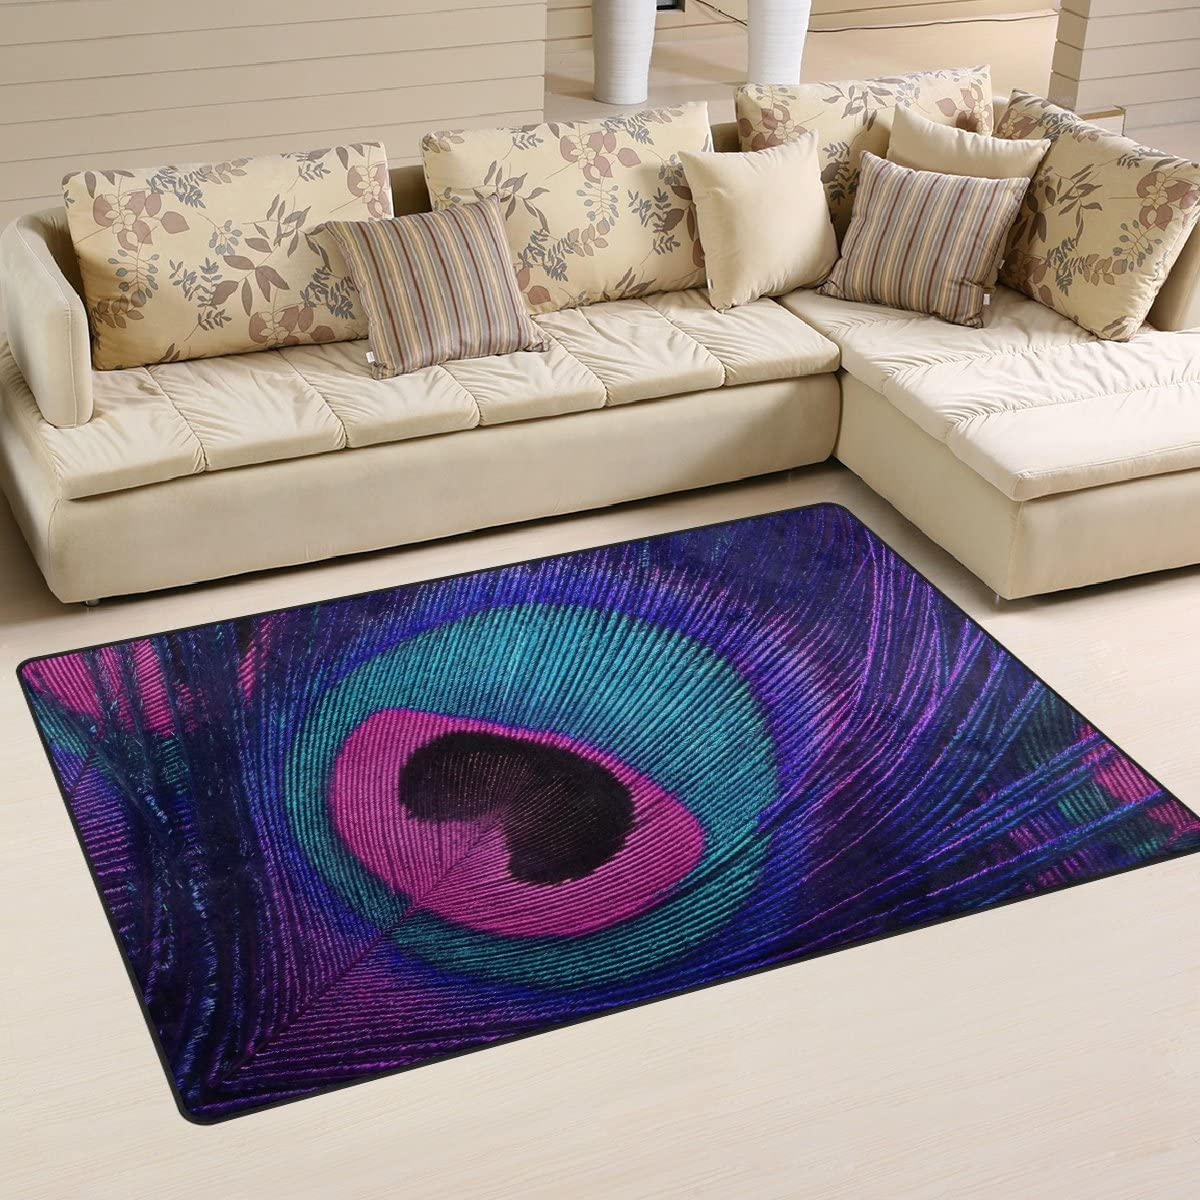 WOZO Purple Peacock Feather Area Rug Rugs Non-Slip Floor Mat Doormats for Living Room Bedroom 60 x 39 inches